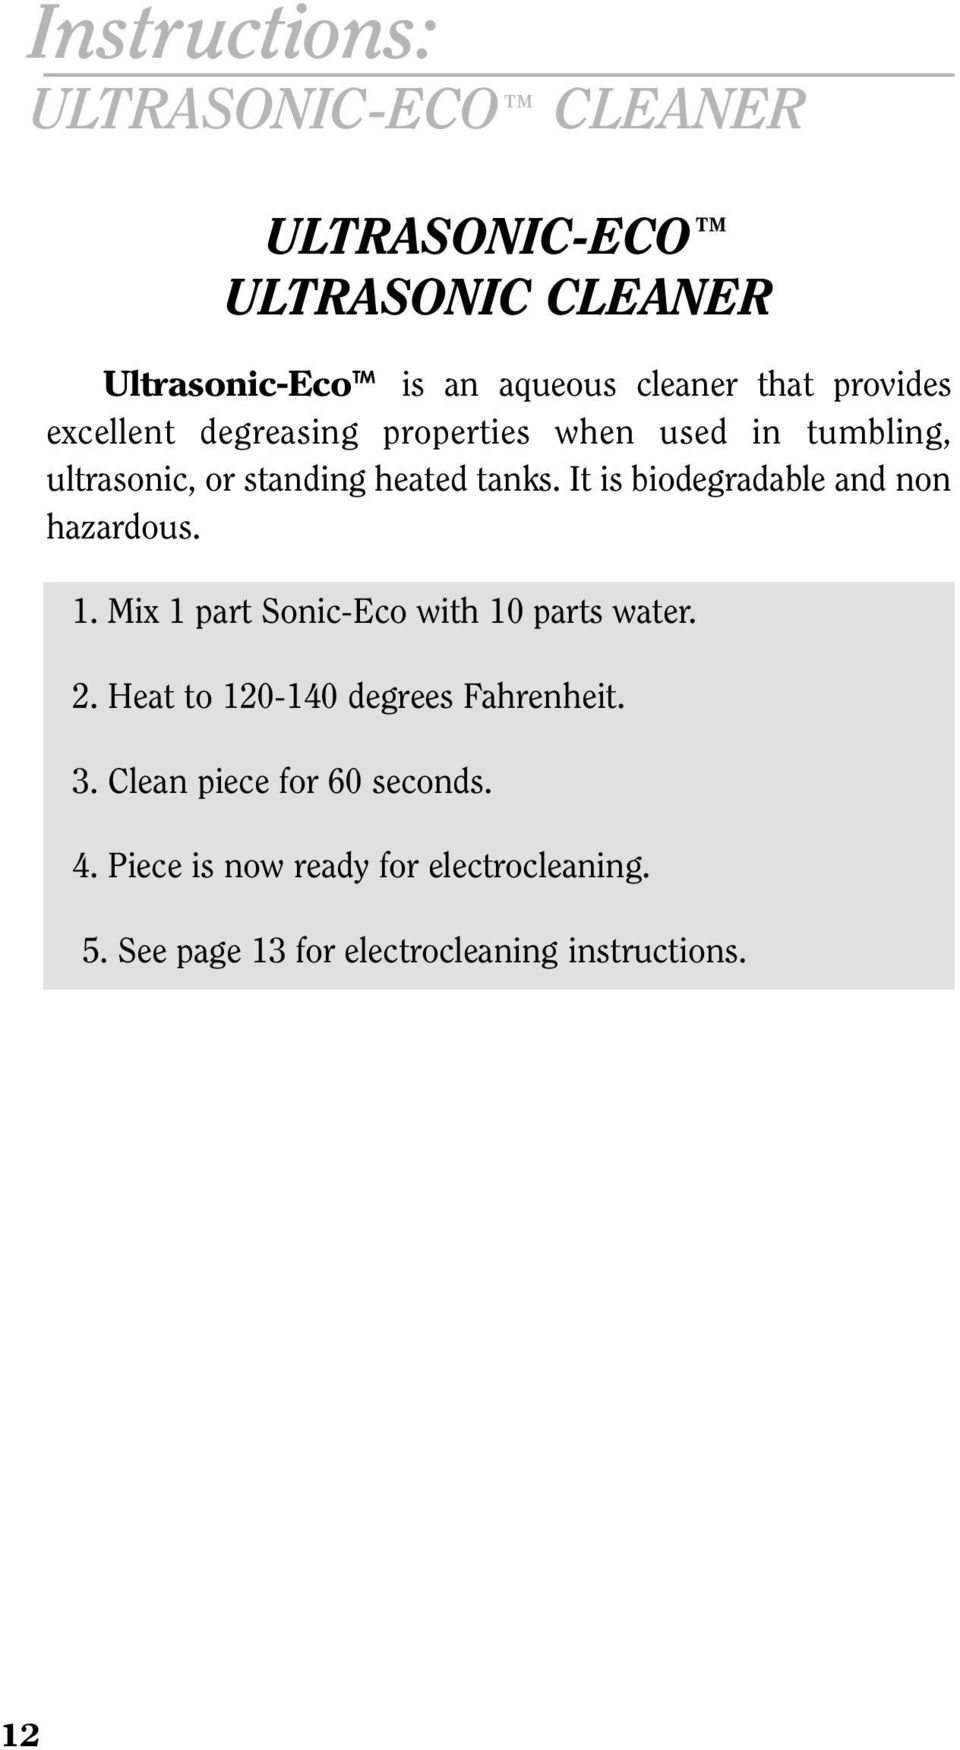 Table Of Contents Super Hard Cyanide Free Diy Circuit Boards Using Photo Etch Process7 Construction It Is Biodegradable And Non Hazardous 1 Mix Part Sonic Eco With